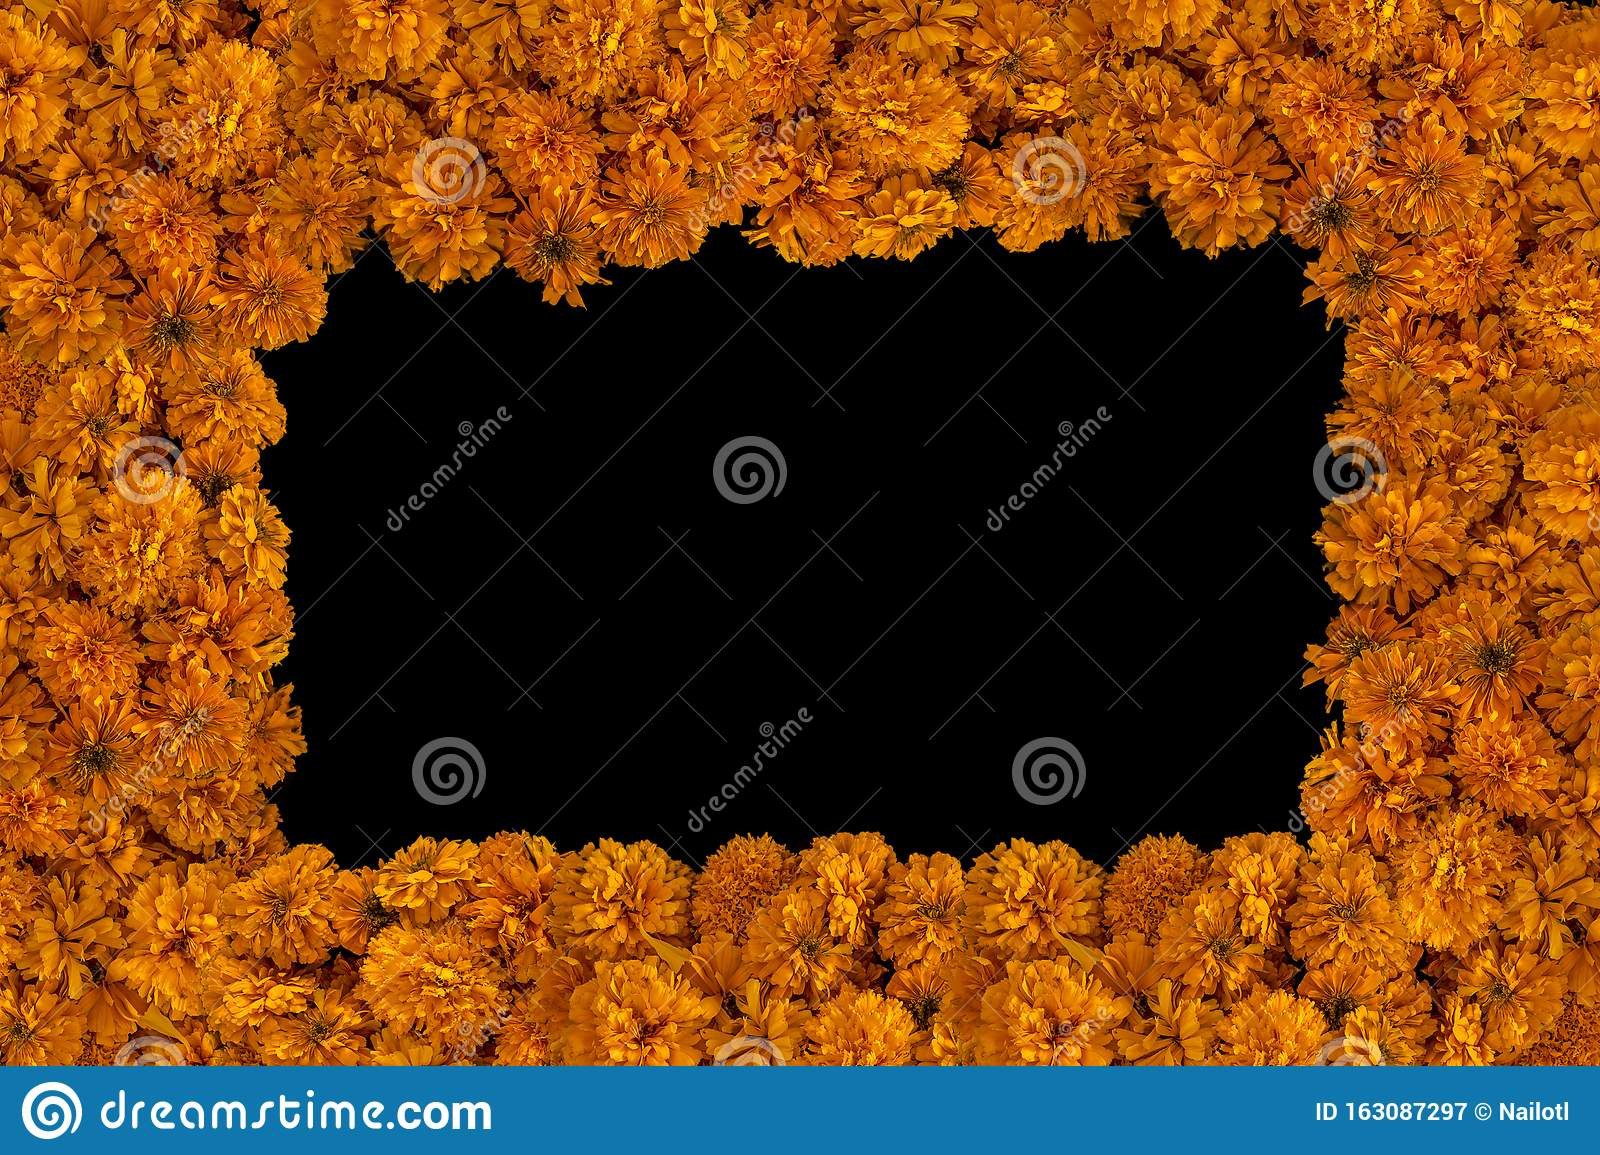 Day Of The Dead Copy Space Horizontal Field Of Flowers Of Dead Marigold Isolated Traditional Flowers To Celebrate The Day Stock Image Image Of Chil Gold 163087297 Hello mtgowikiprice user, we hope you like our pricing service! dreamstime com